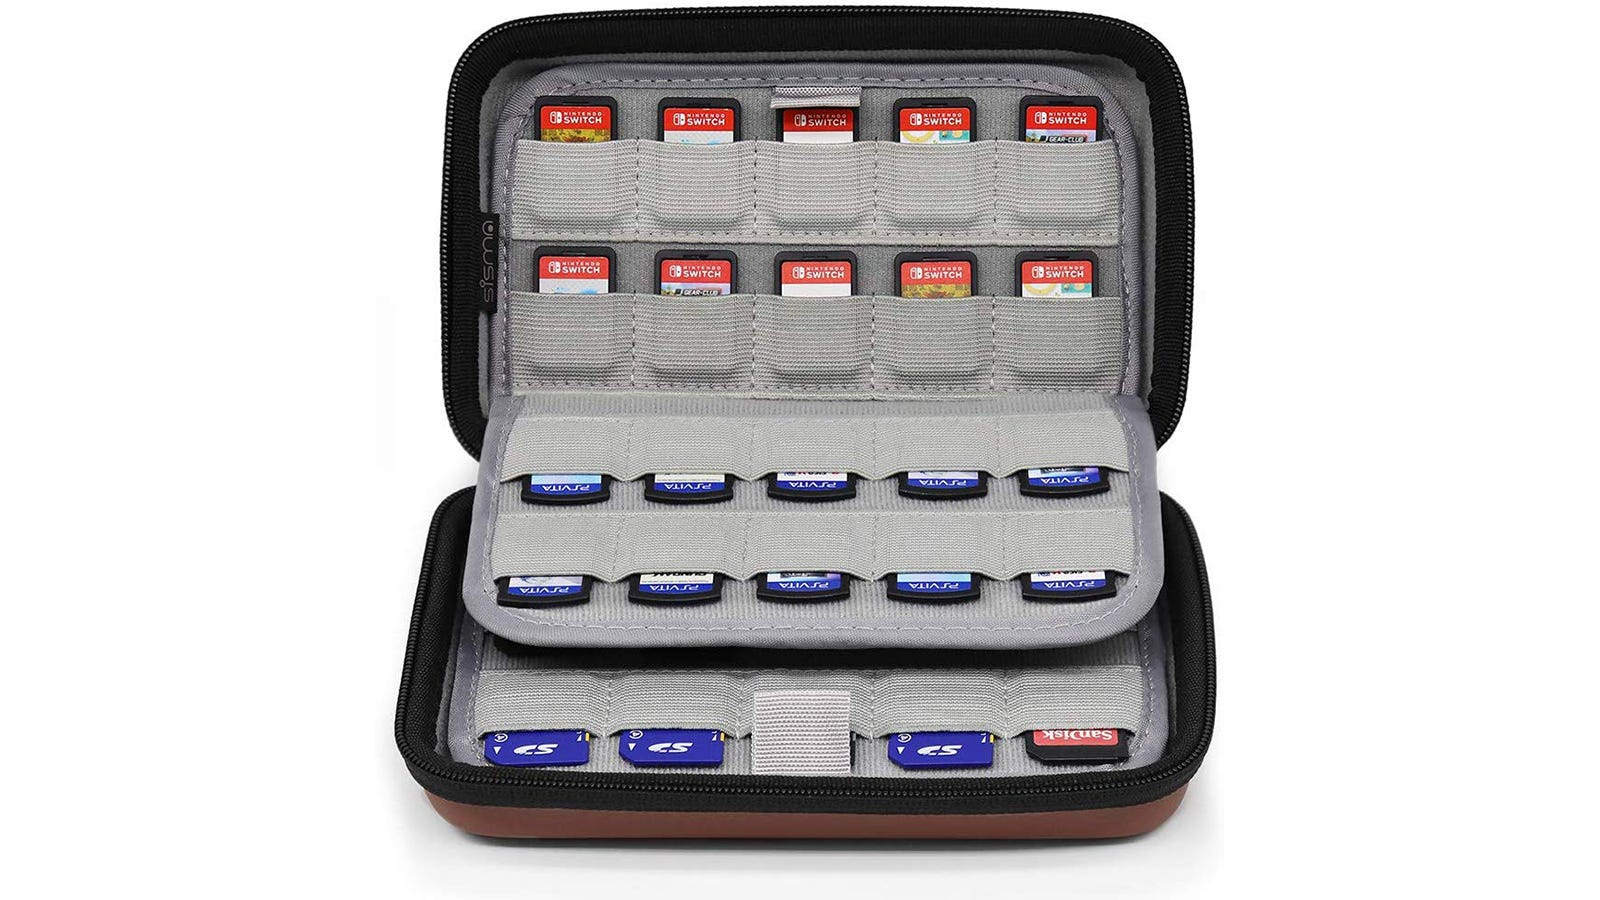 Sisma 80 Game Cartridge Holder